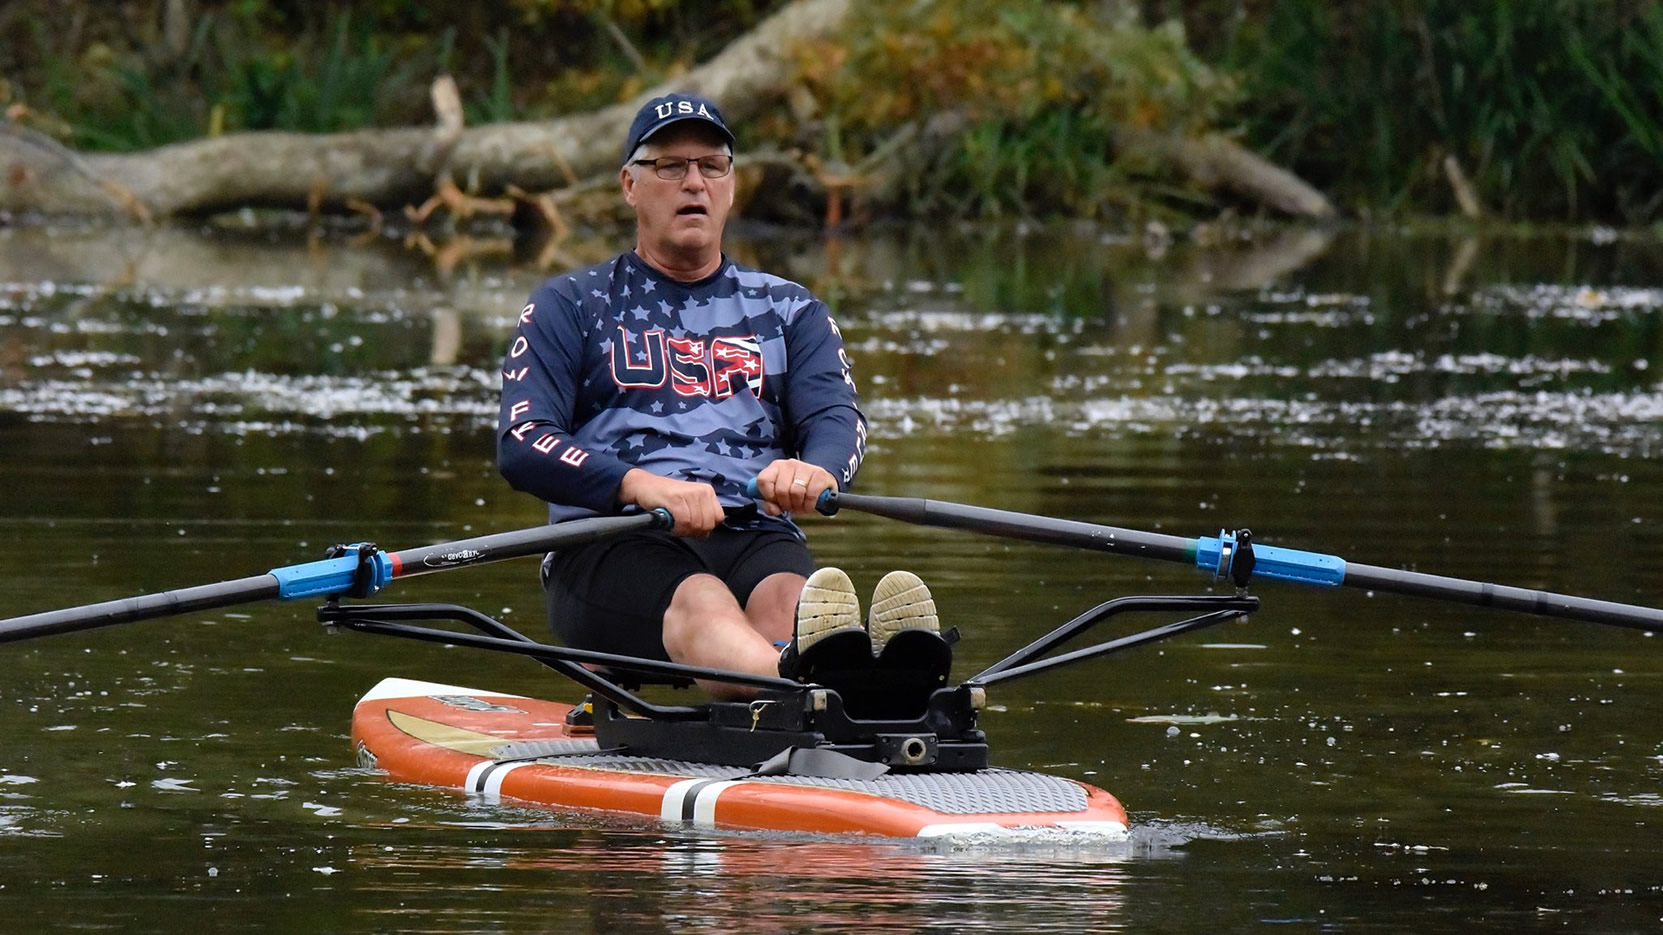 oar-board-stand-up-paddle-rower-ambassador-russell-kuntz-whitehall-rowing-and-sail